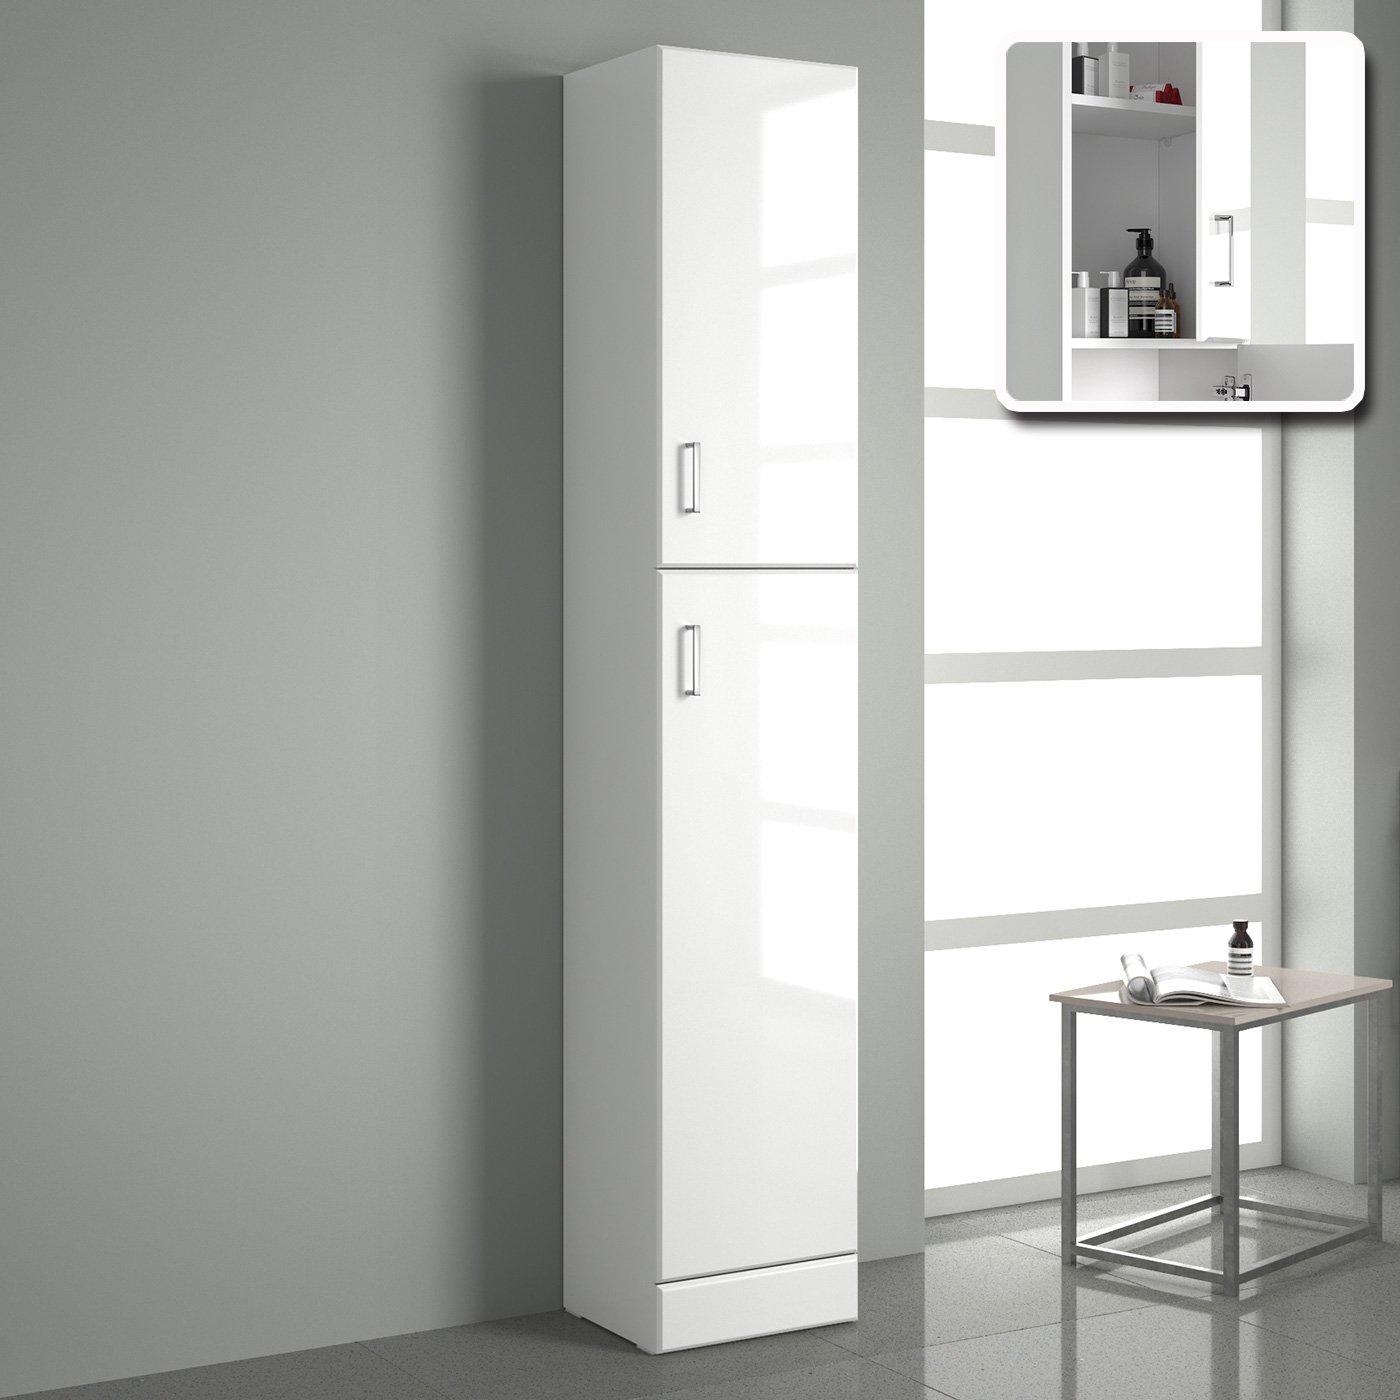 1900mm Tall Gloss White Bathroom Cupboard Reversible Storage ...